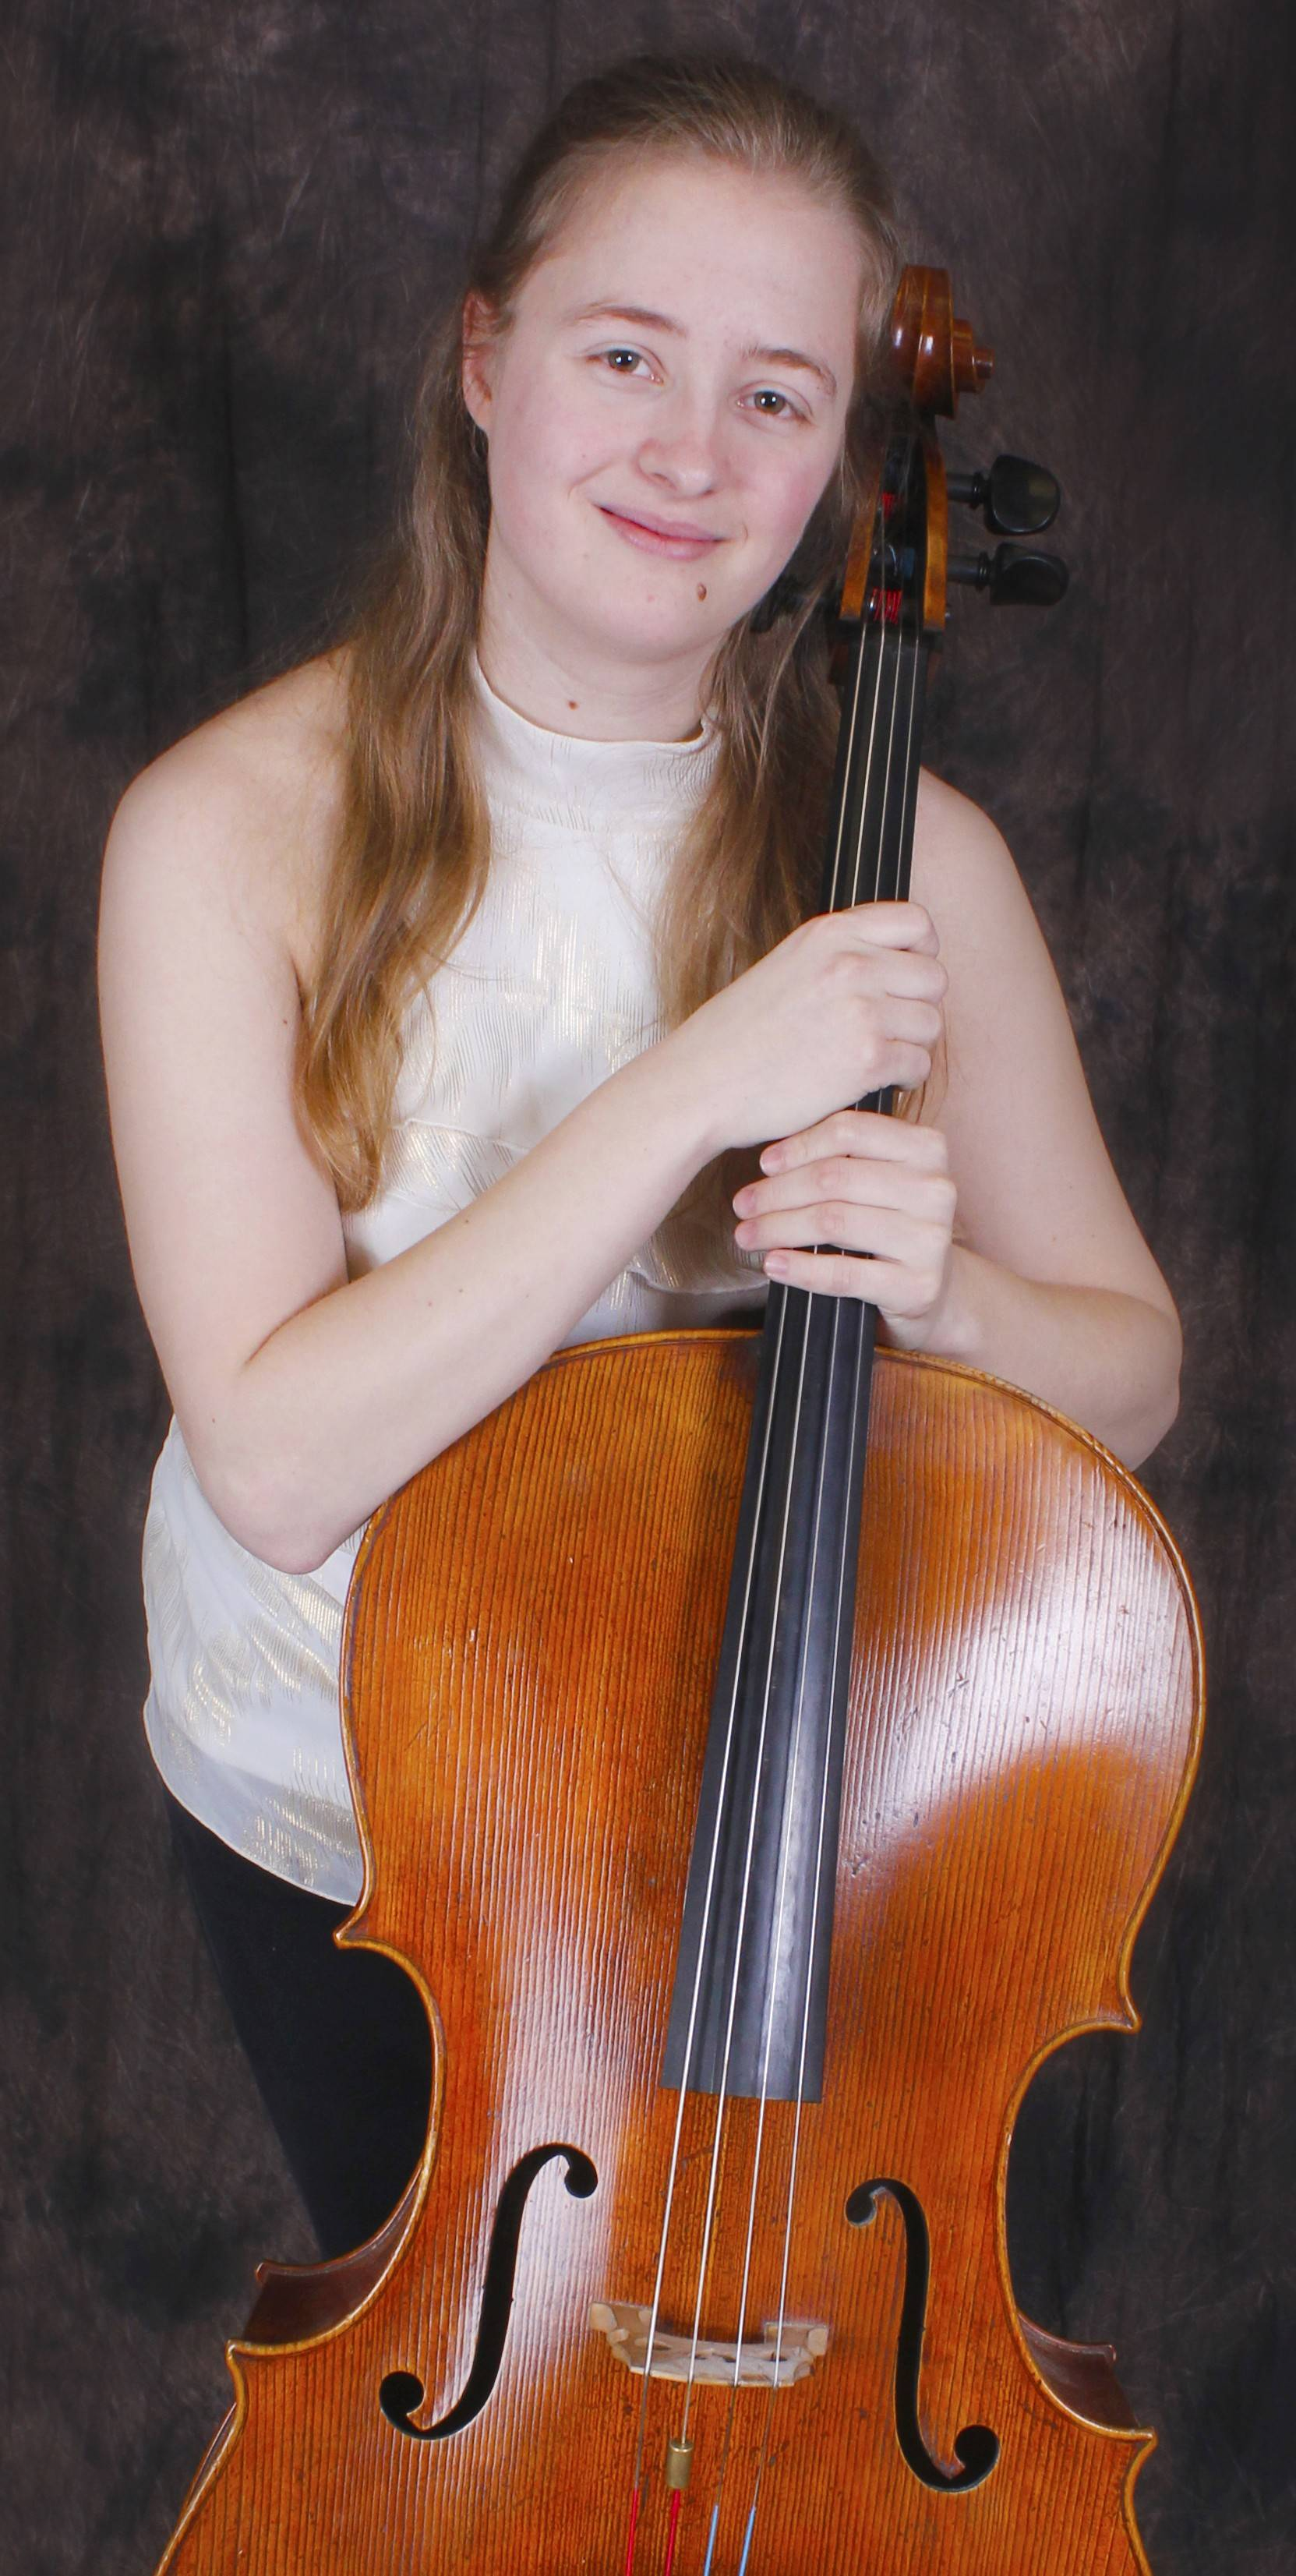 Cellist Emily Camras, a member of Temple B'nai Israel in Aurora, will perform a recital on Sunday, Nov. 19, at Congregation Beth Shalom in Naperville.